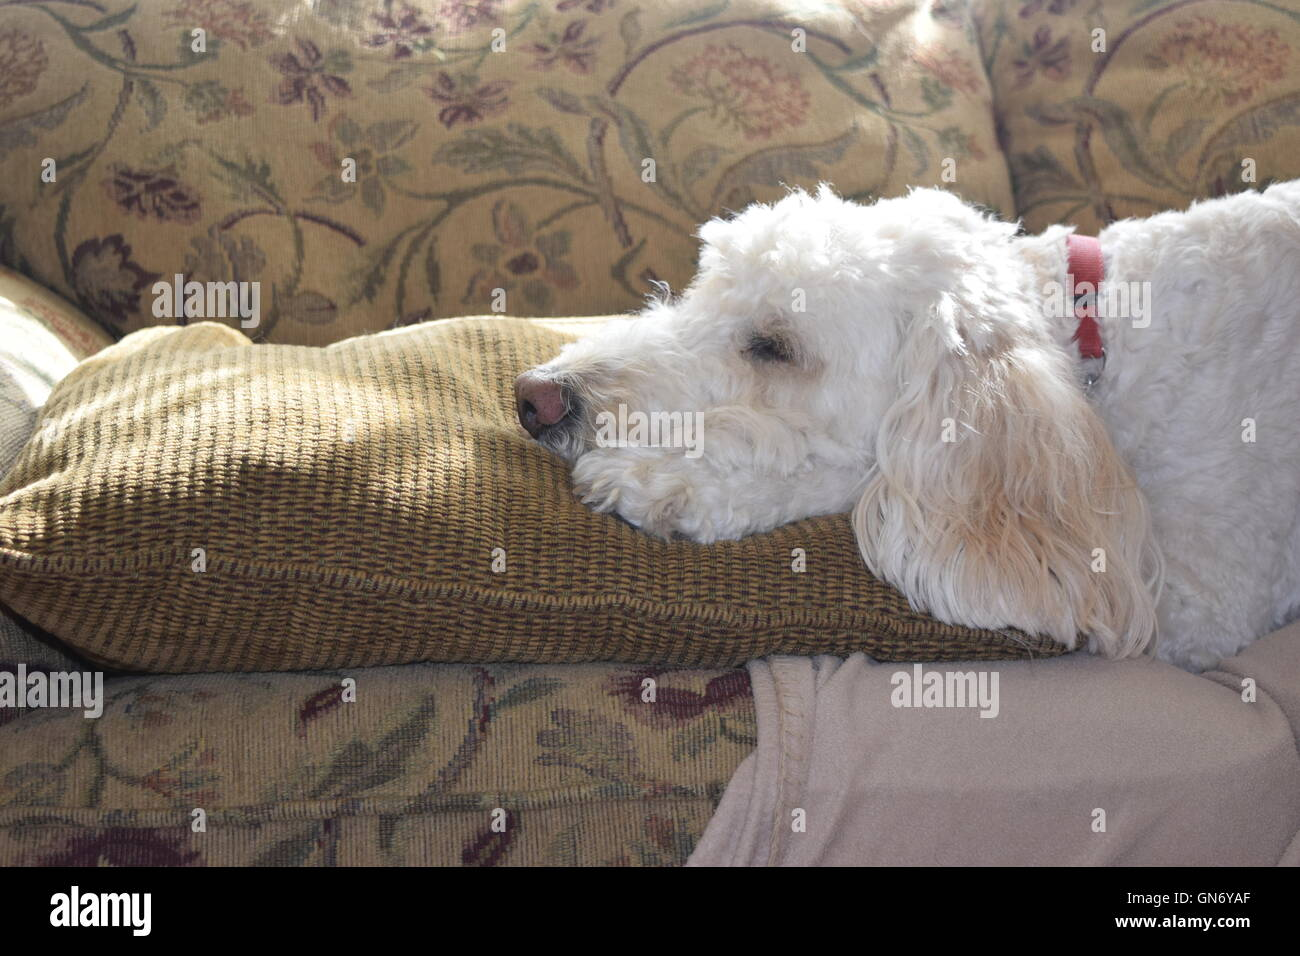 https www alamy com stock photo dog laying with head on pillow 116323159 html